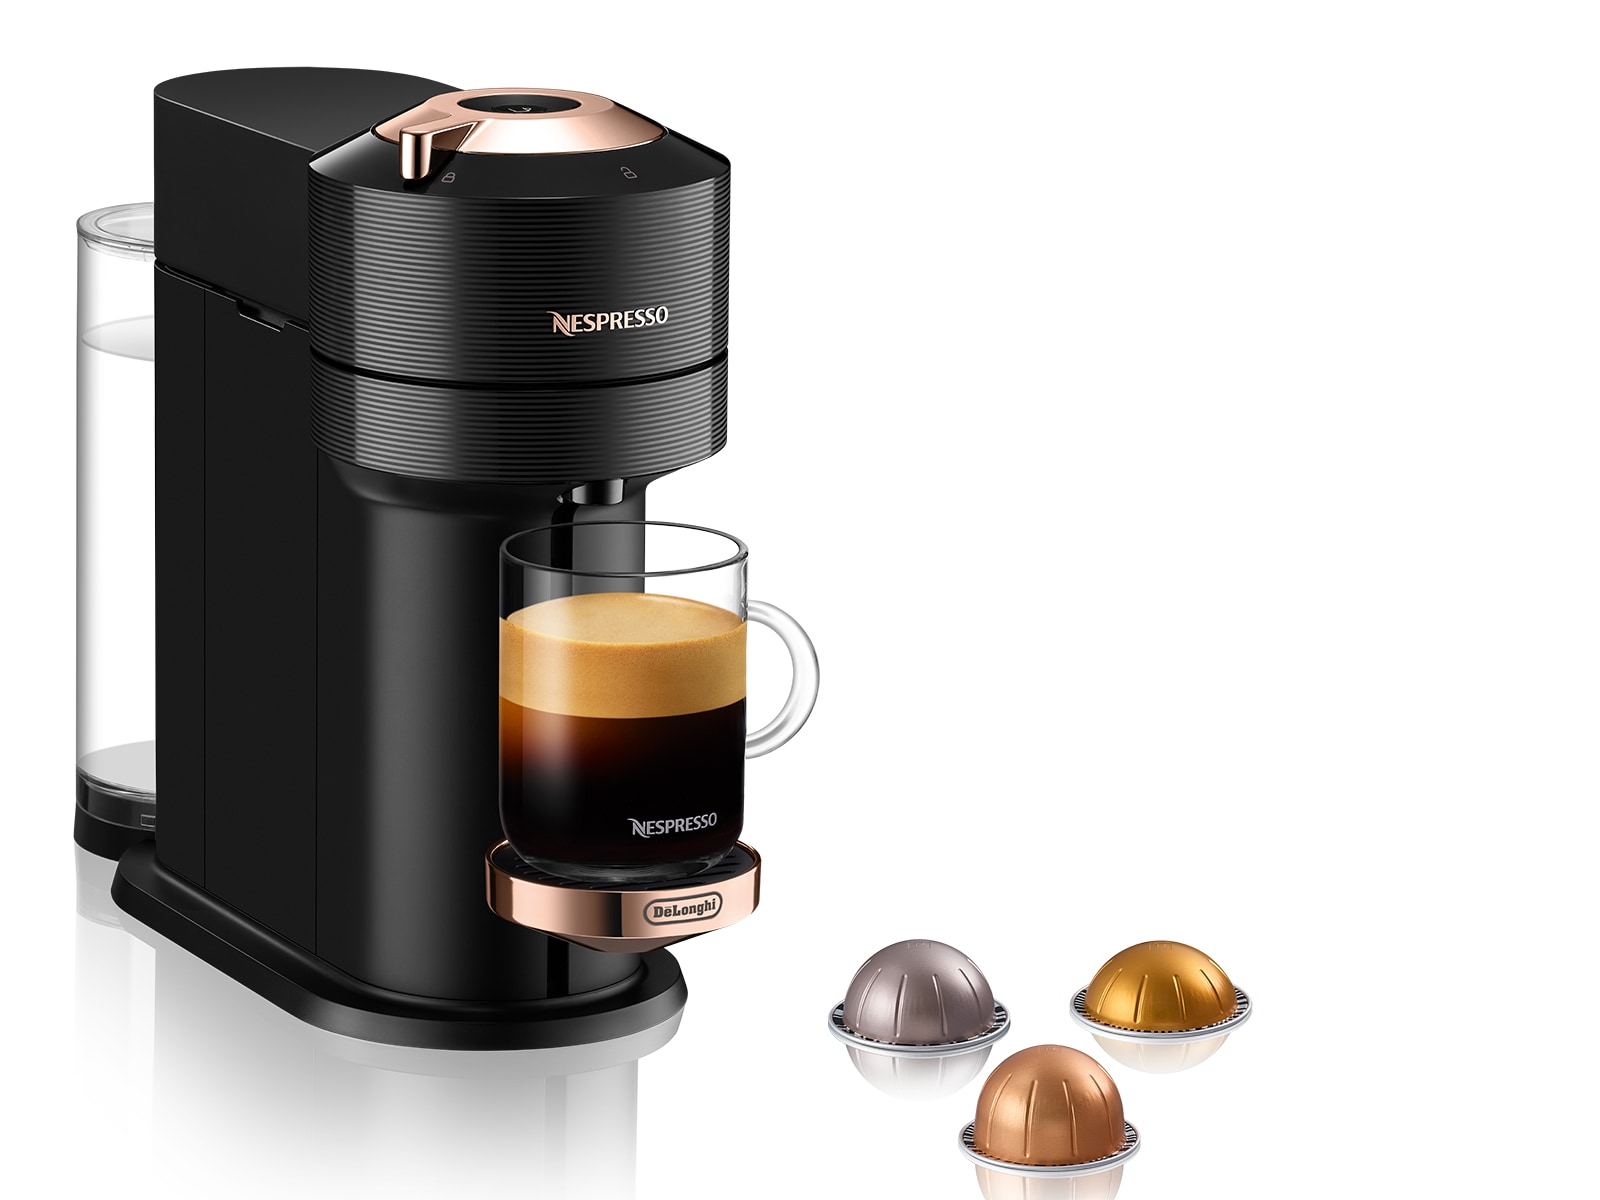 Nespresso Vertuo Next Coffee and Espresso Machine with Aeroccino by De'Longhi, Black with Rose Gold, - ENV120BAECA